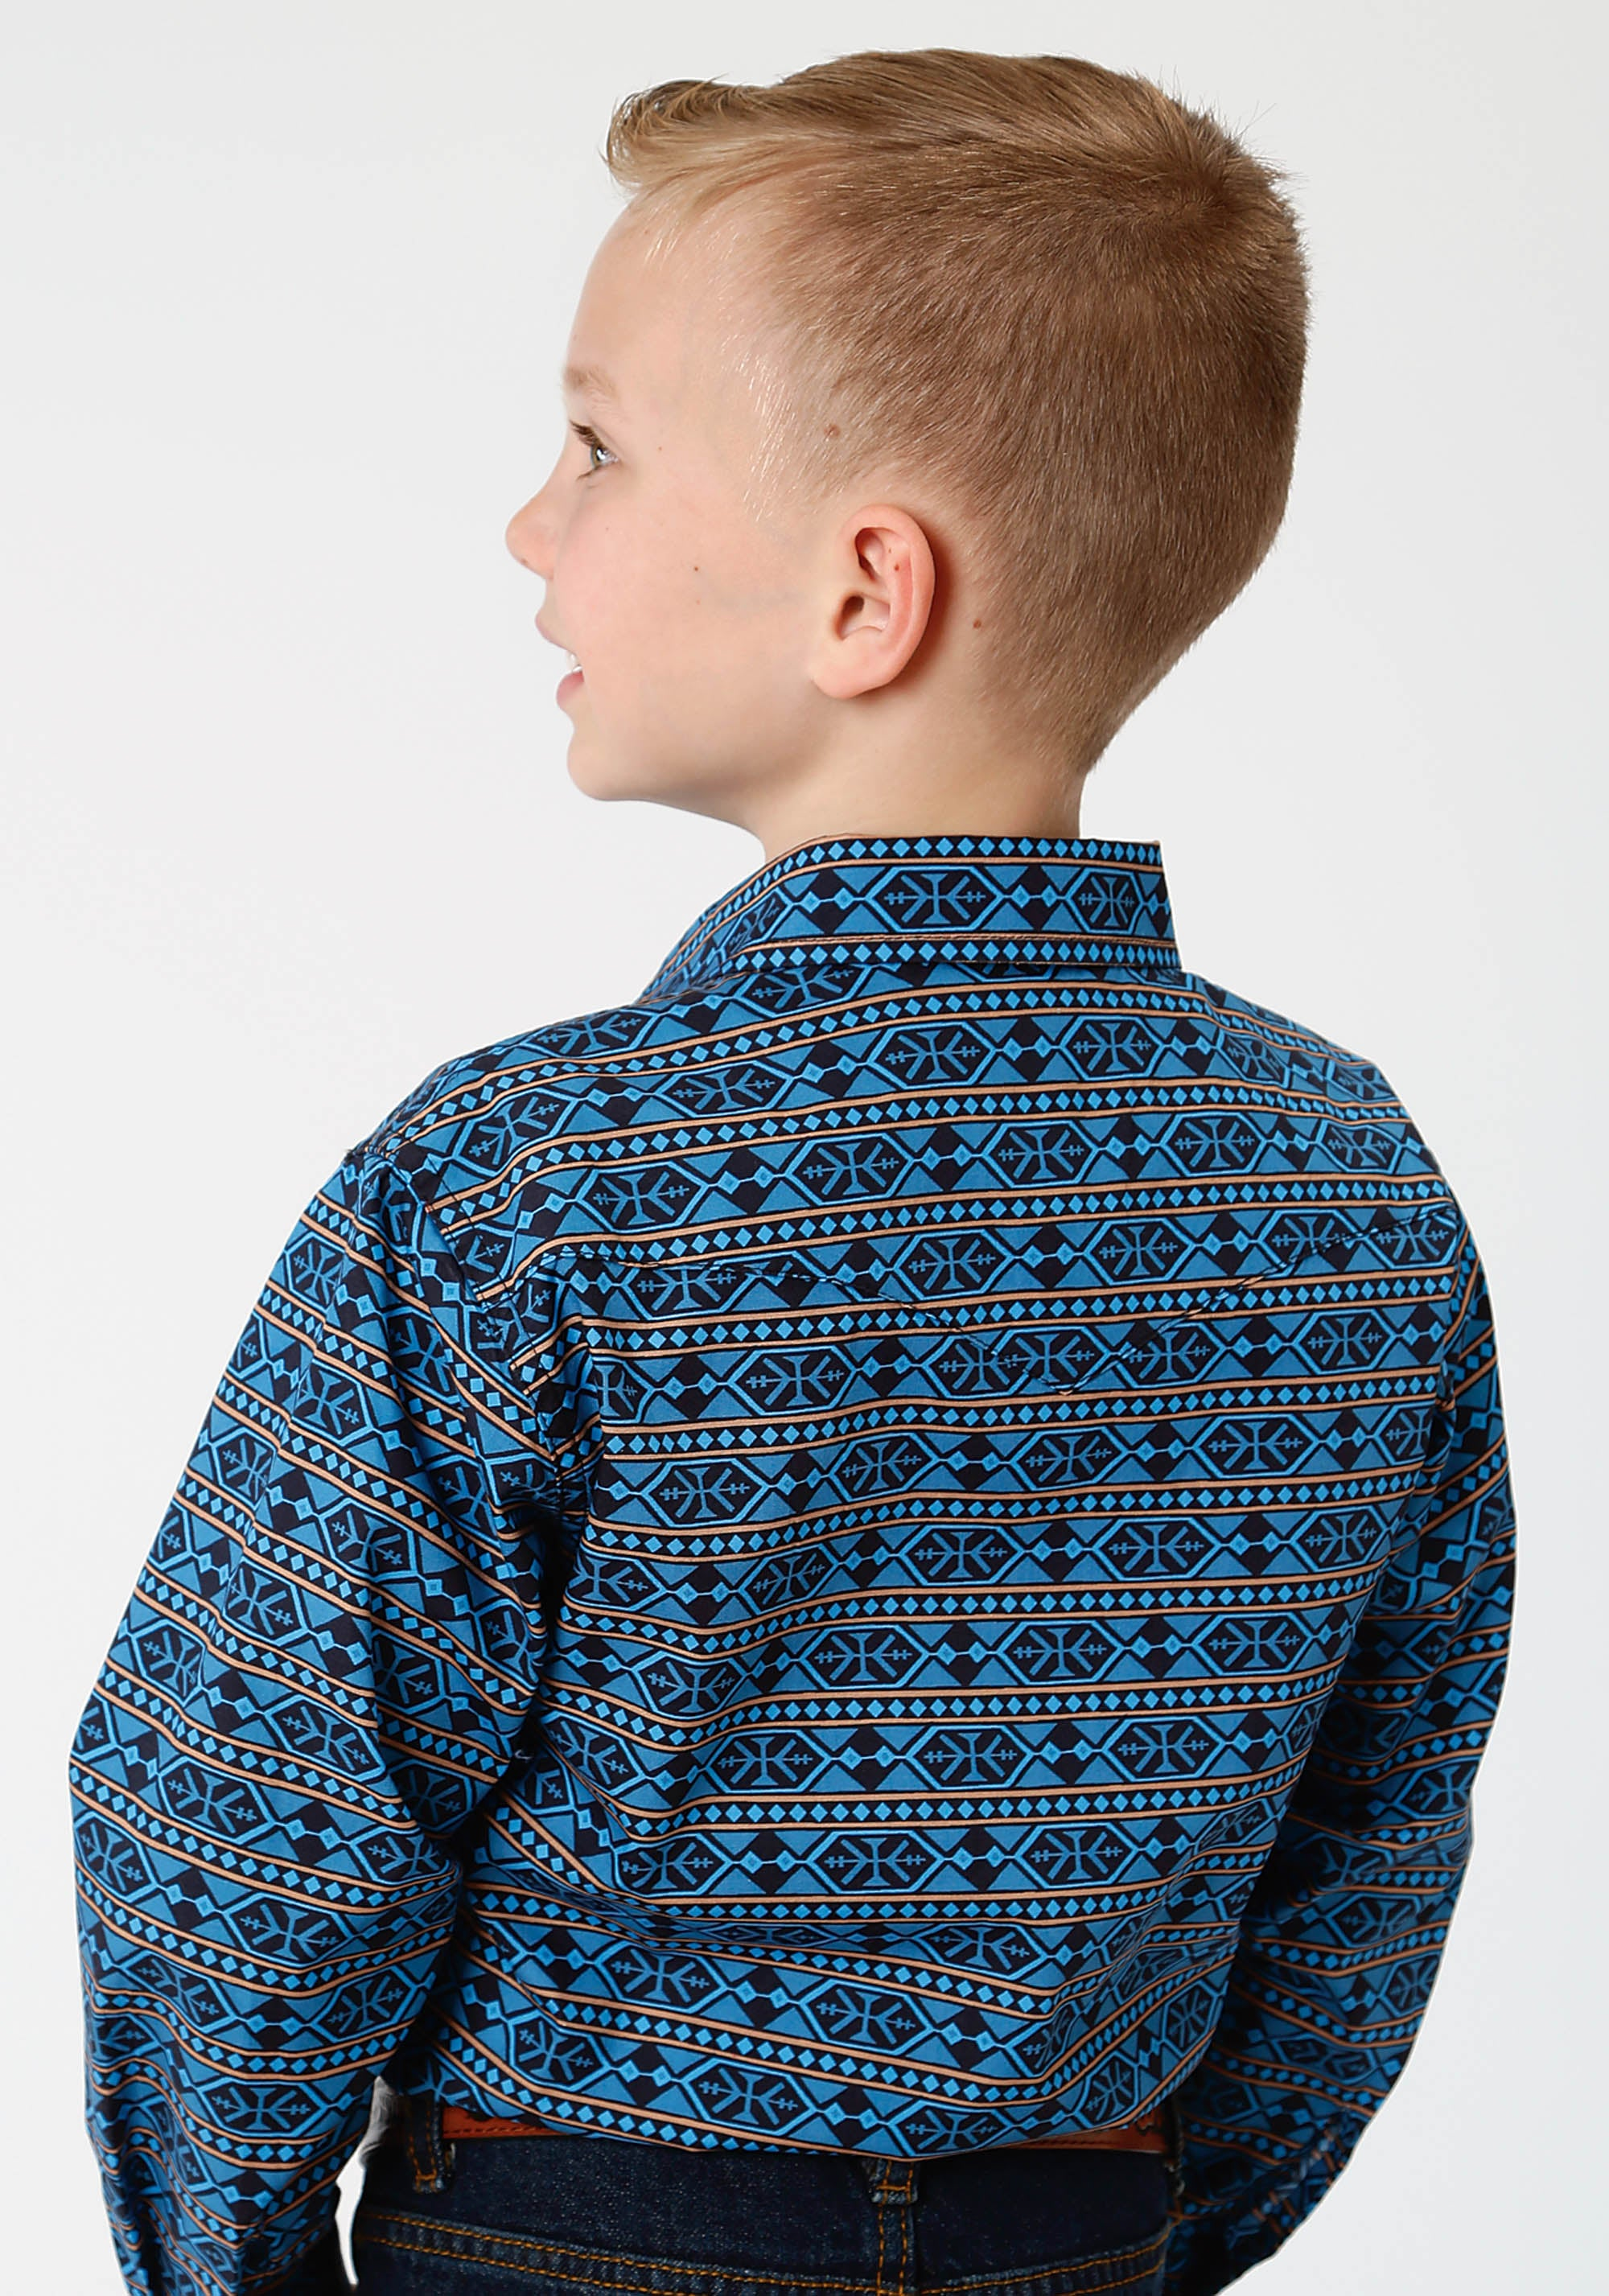 WEST MADE BOYS BLUE 0810 HEX AZTEC PRINT